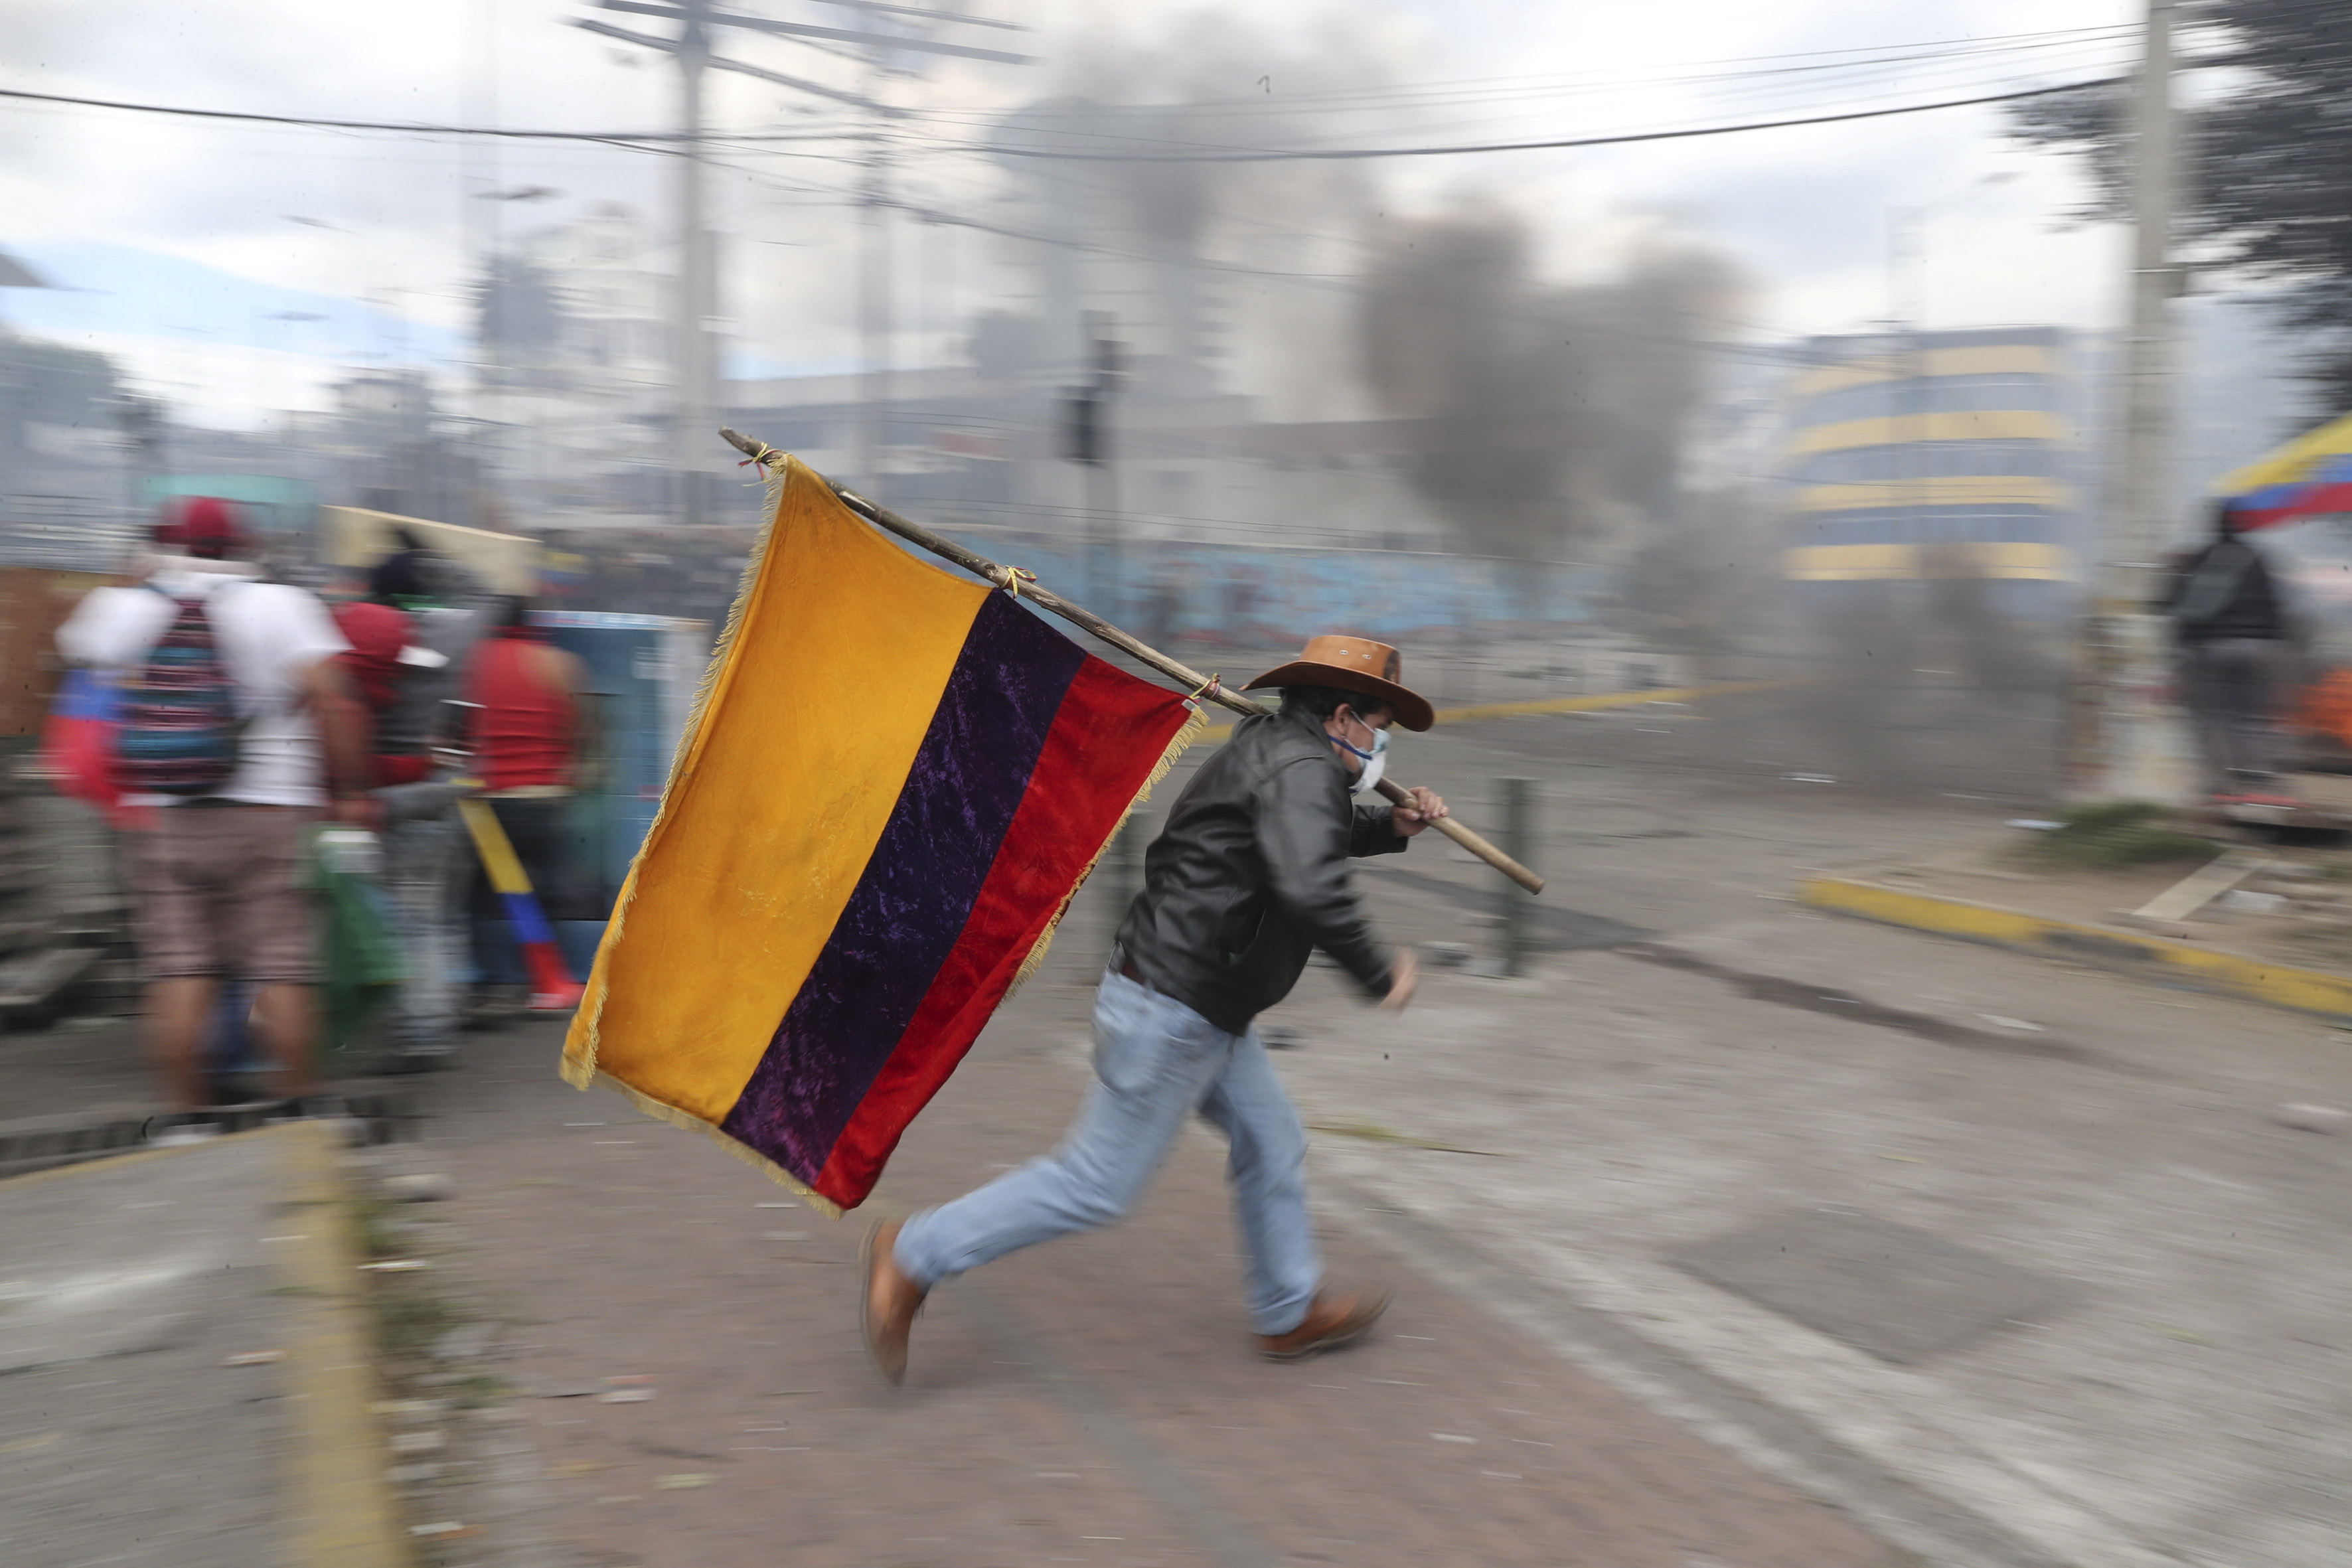 12 October 2019: A demonstrator running while holding an Ecuadorian flag in Quito, Ecuador, during a protest against President Lenín Moreno's austerity measures. (Photographs by Reuters/Ivan Alvarado)